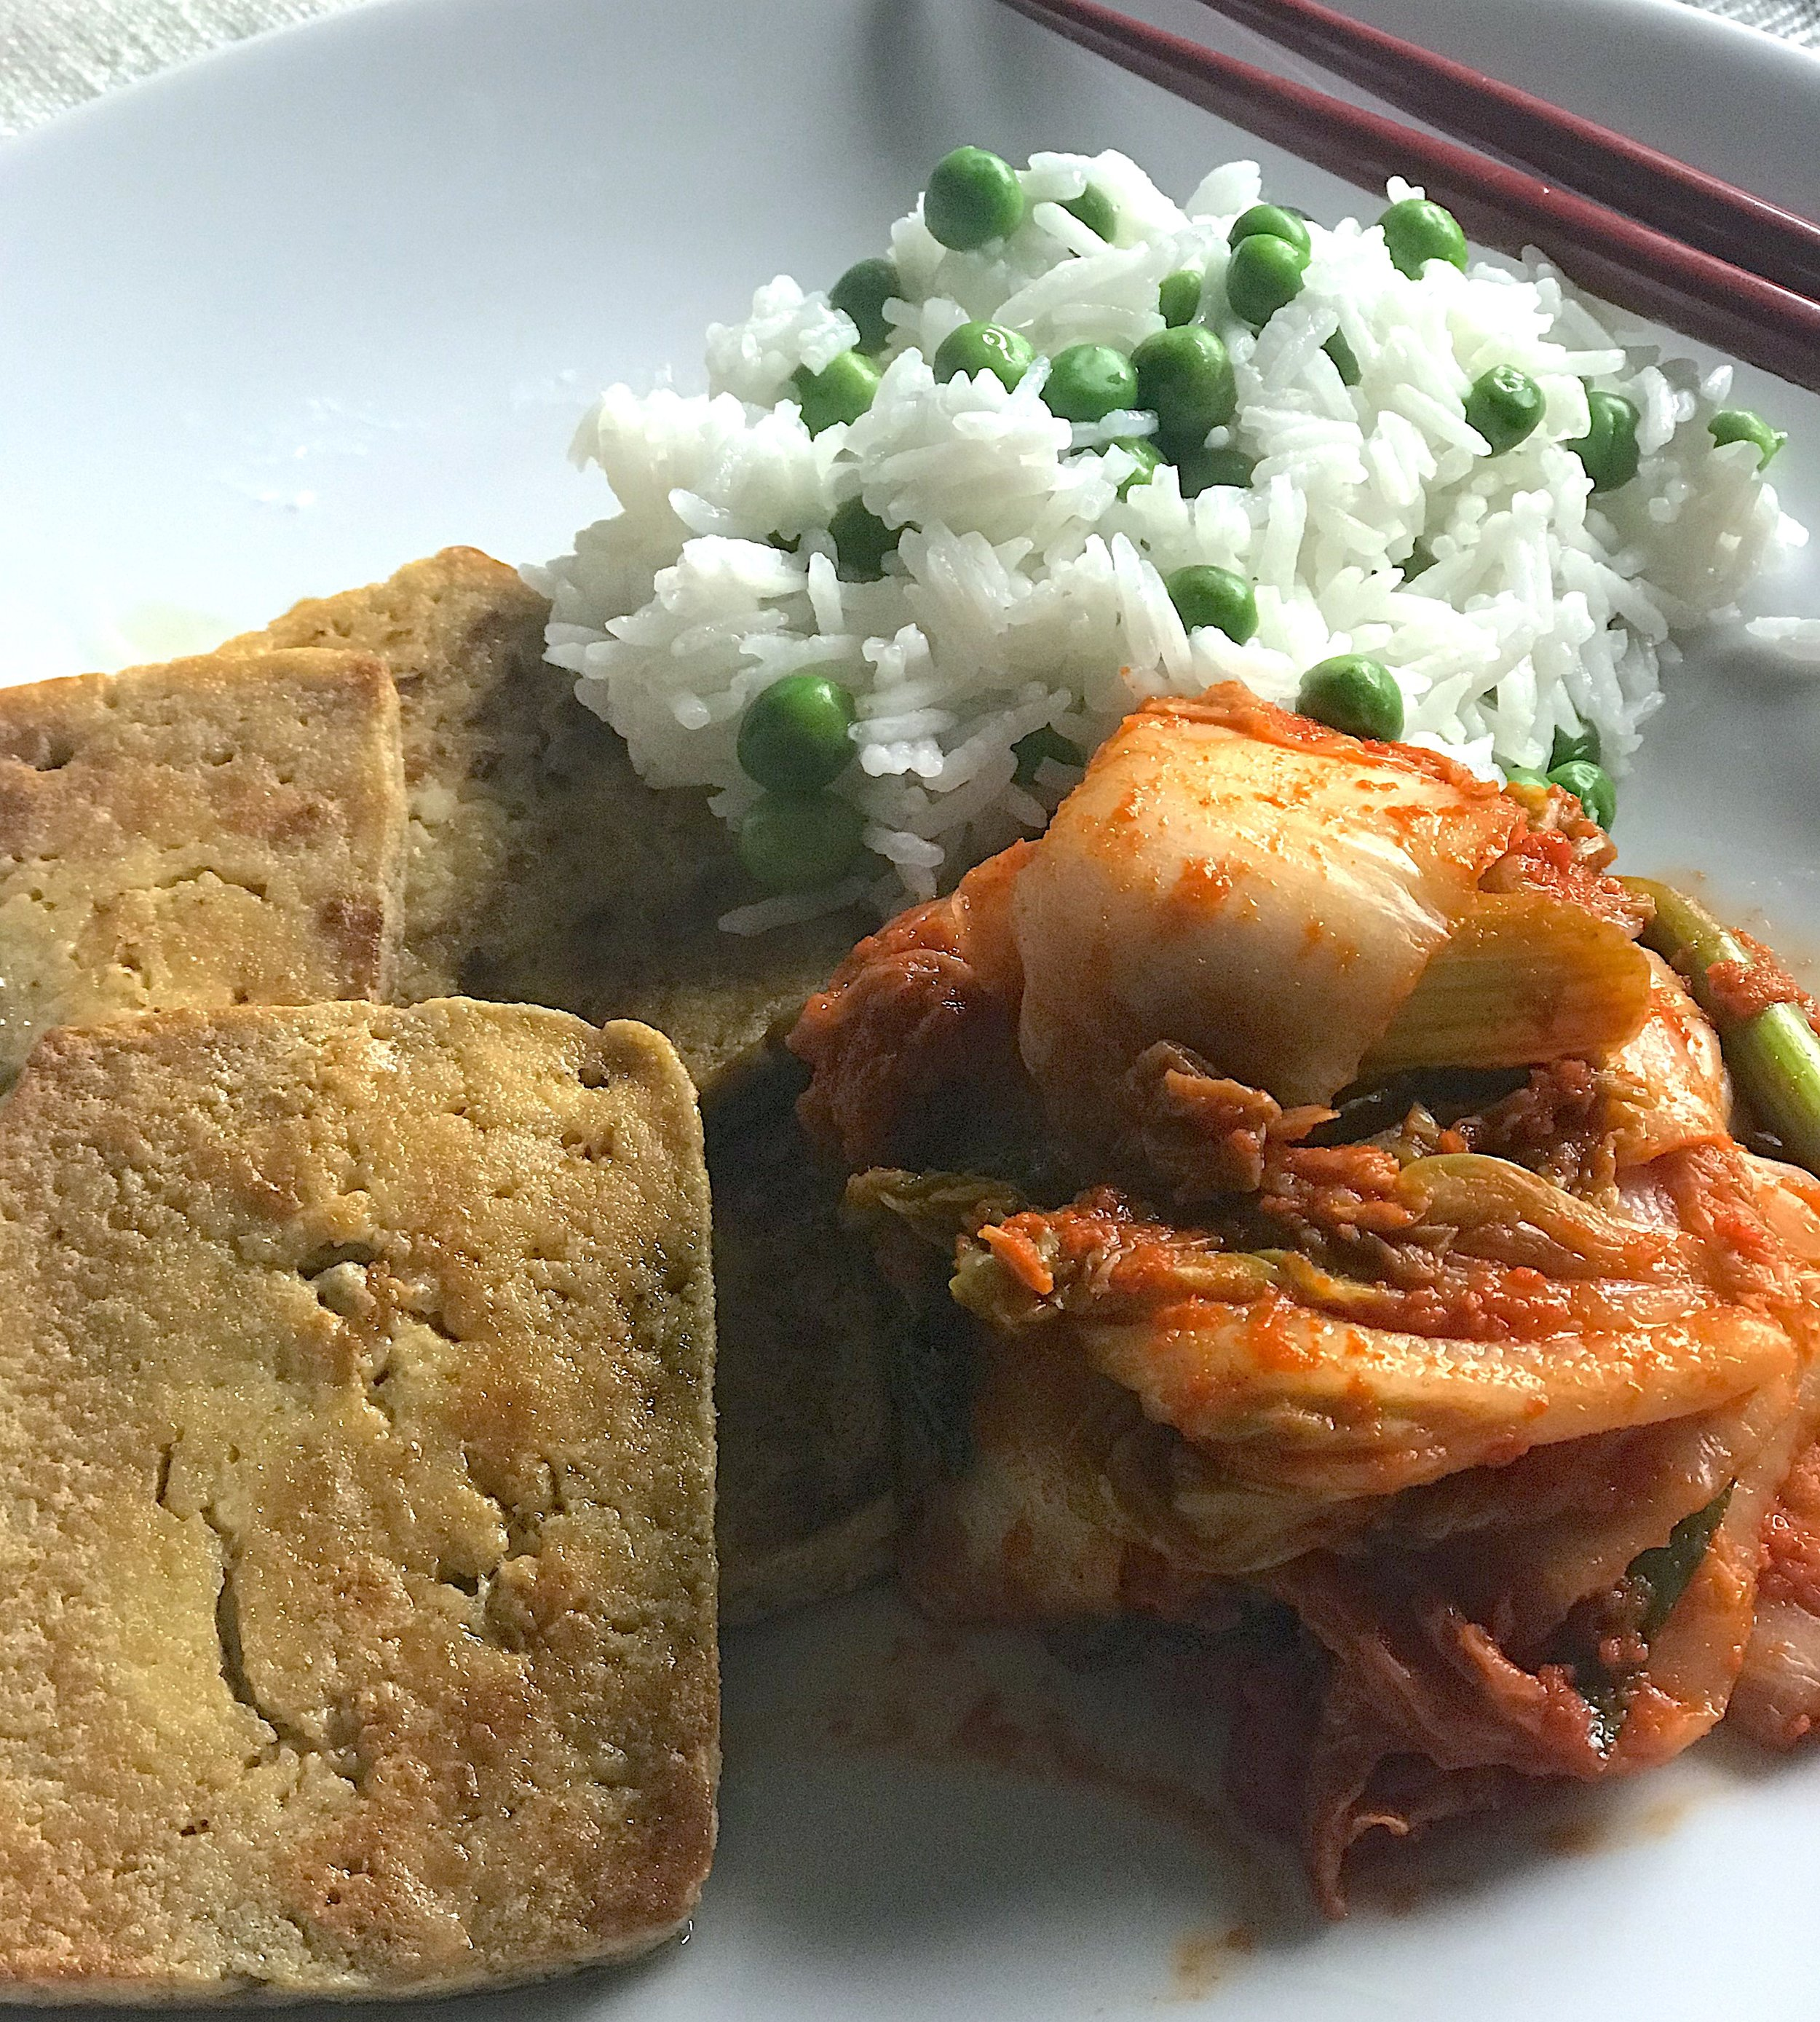 Pan fried tofu, rice with peas, and vegan kimchi. (Yes, that is basmati rice. I know. I know. It's supposed to be short-grained…shhhhhh)